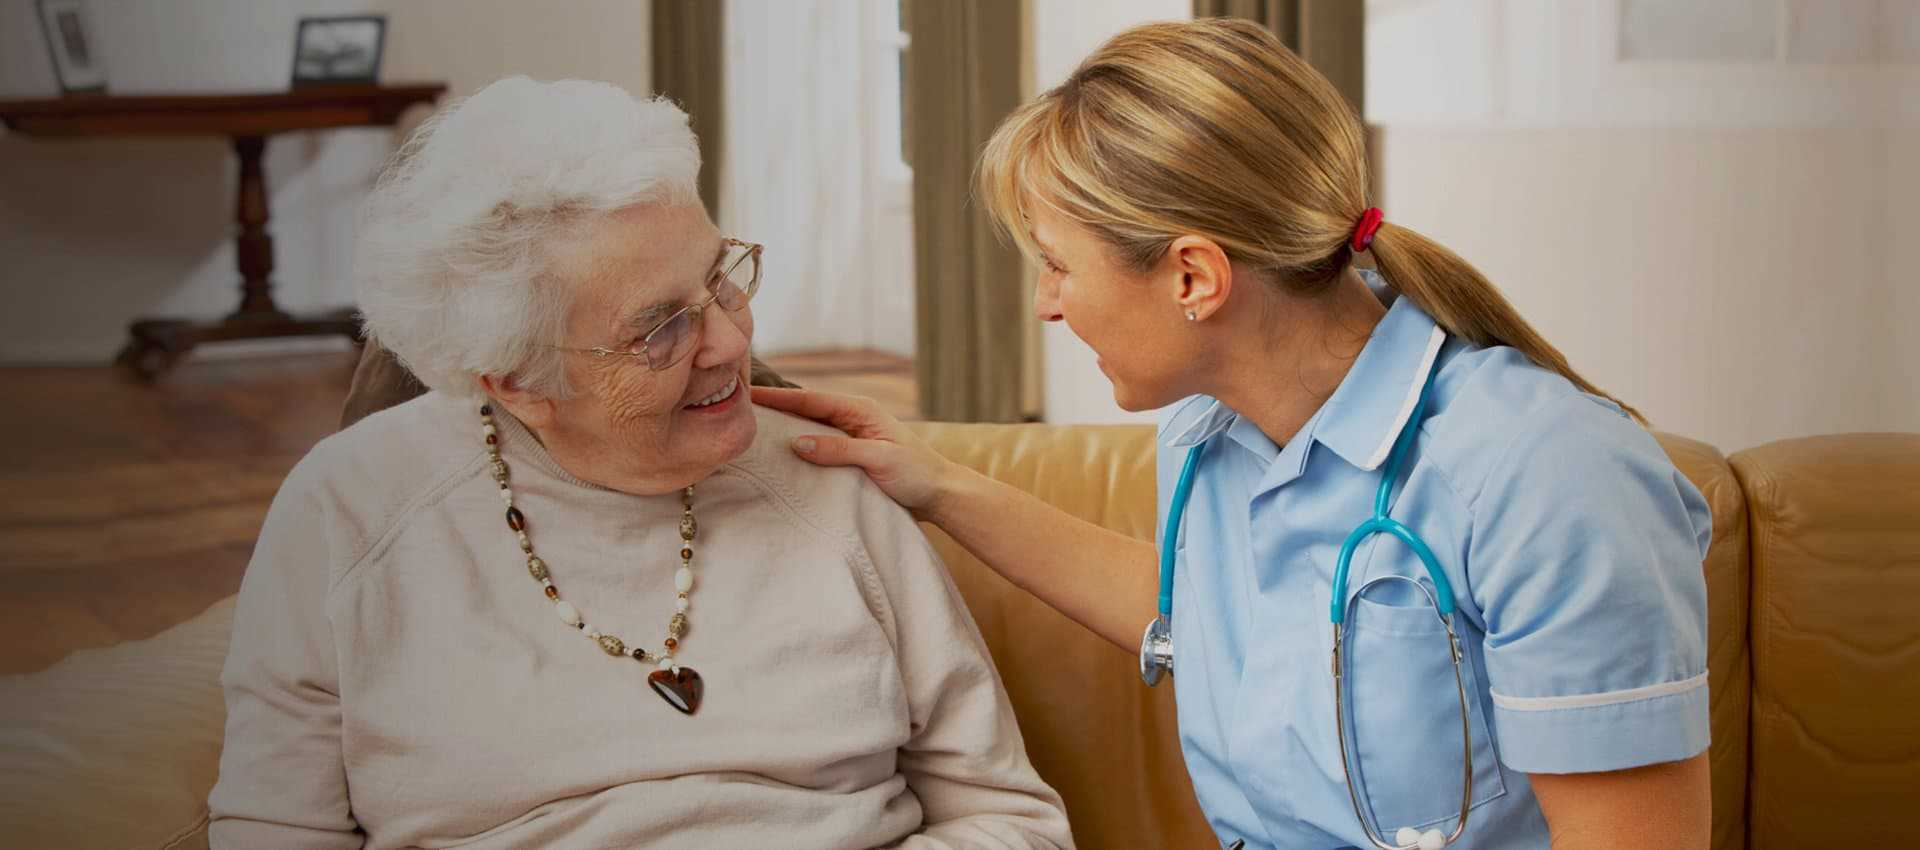 nurse talking to an elder woman